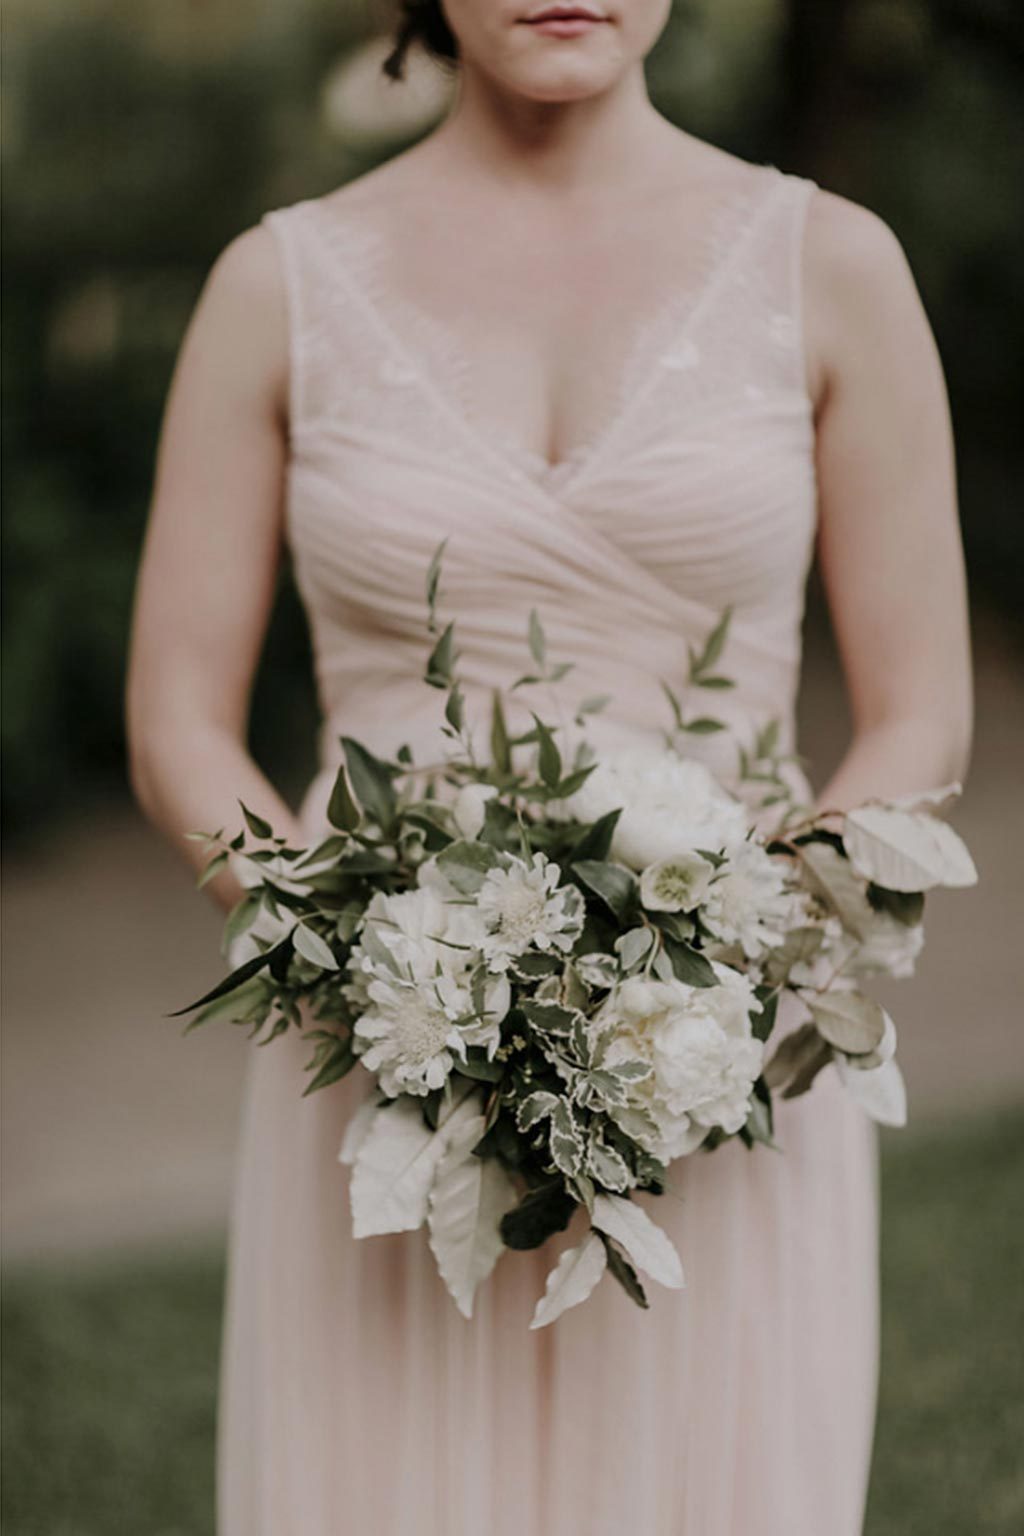 Bridesmaid with peach sleeveless gown and white and green natural bouquet